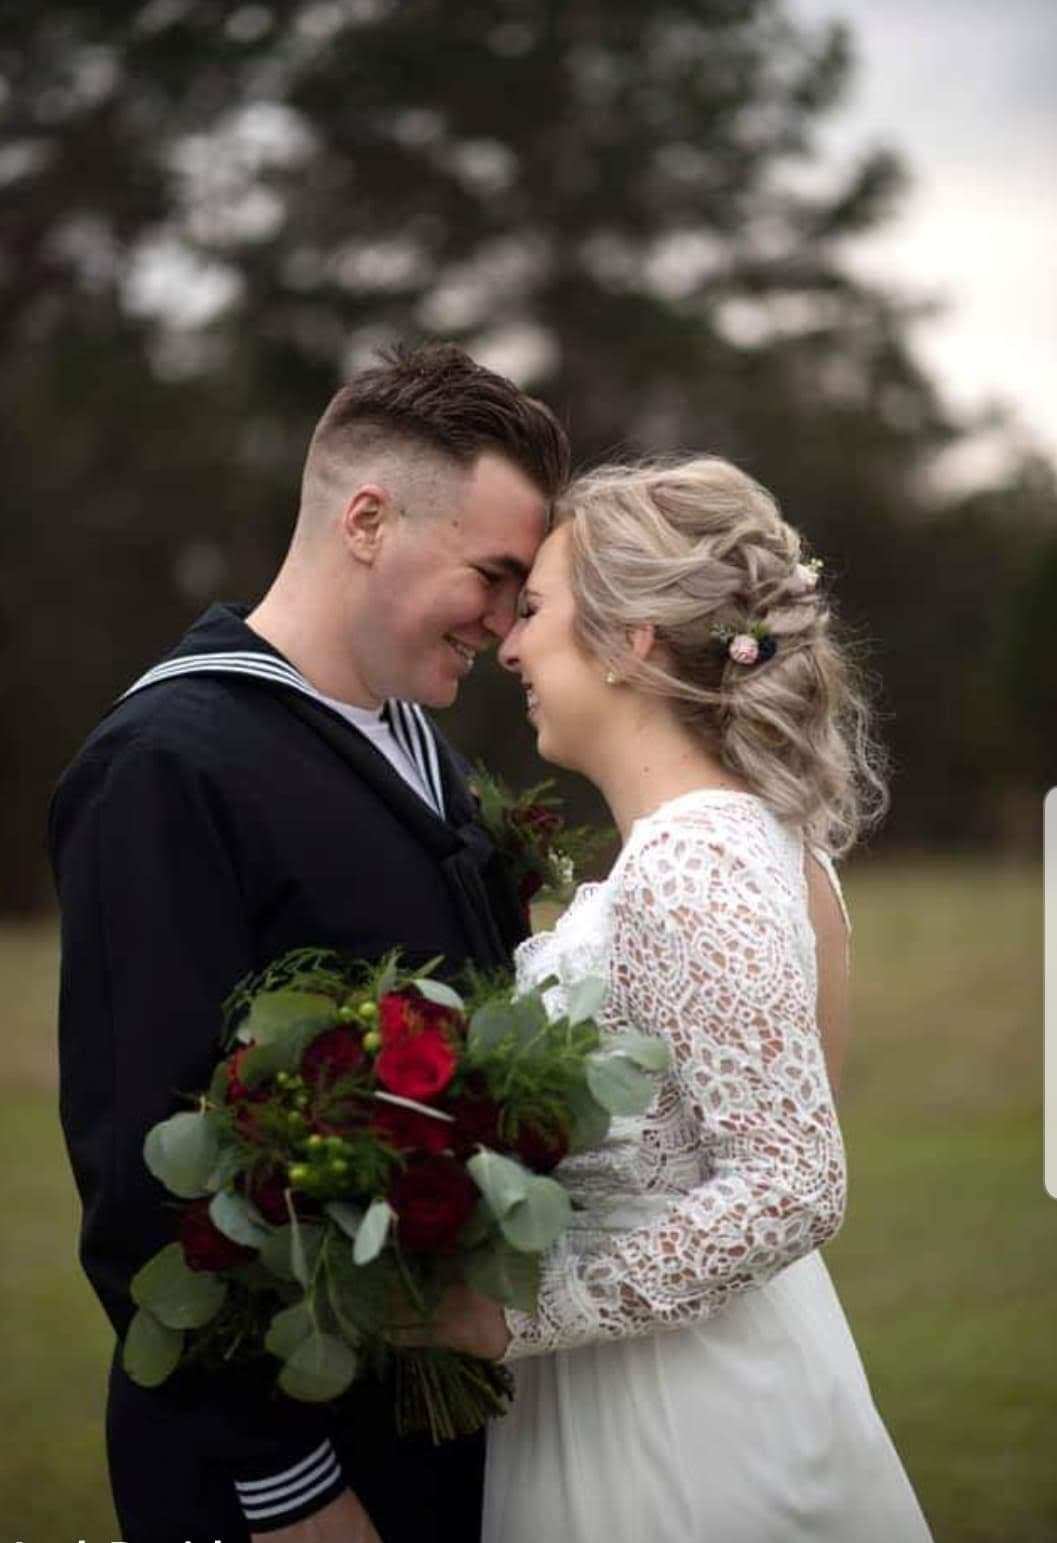 Wedding couple drawing their heads closer while smiling